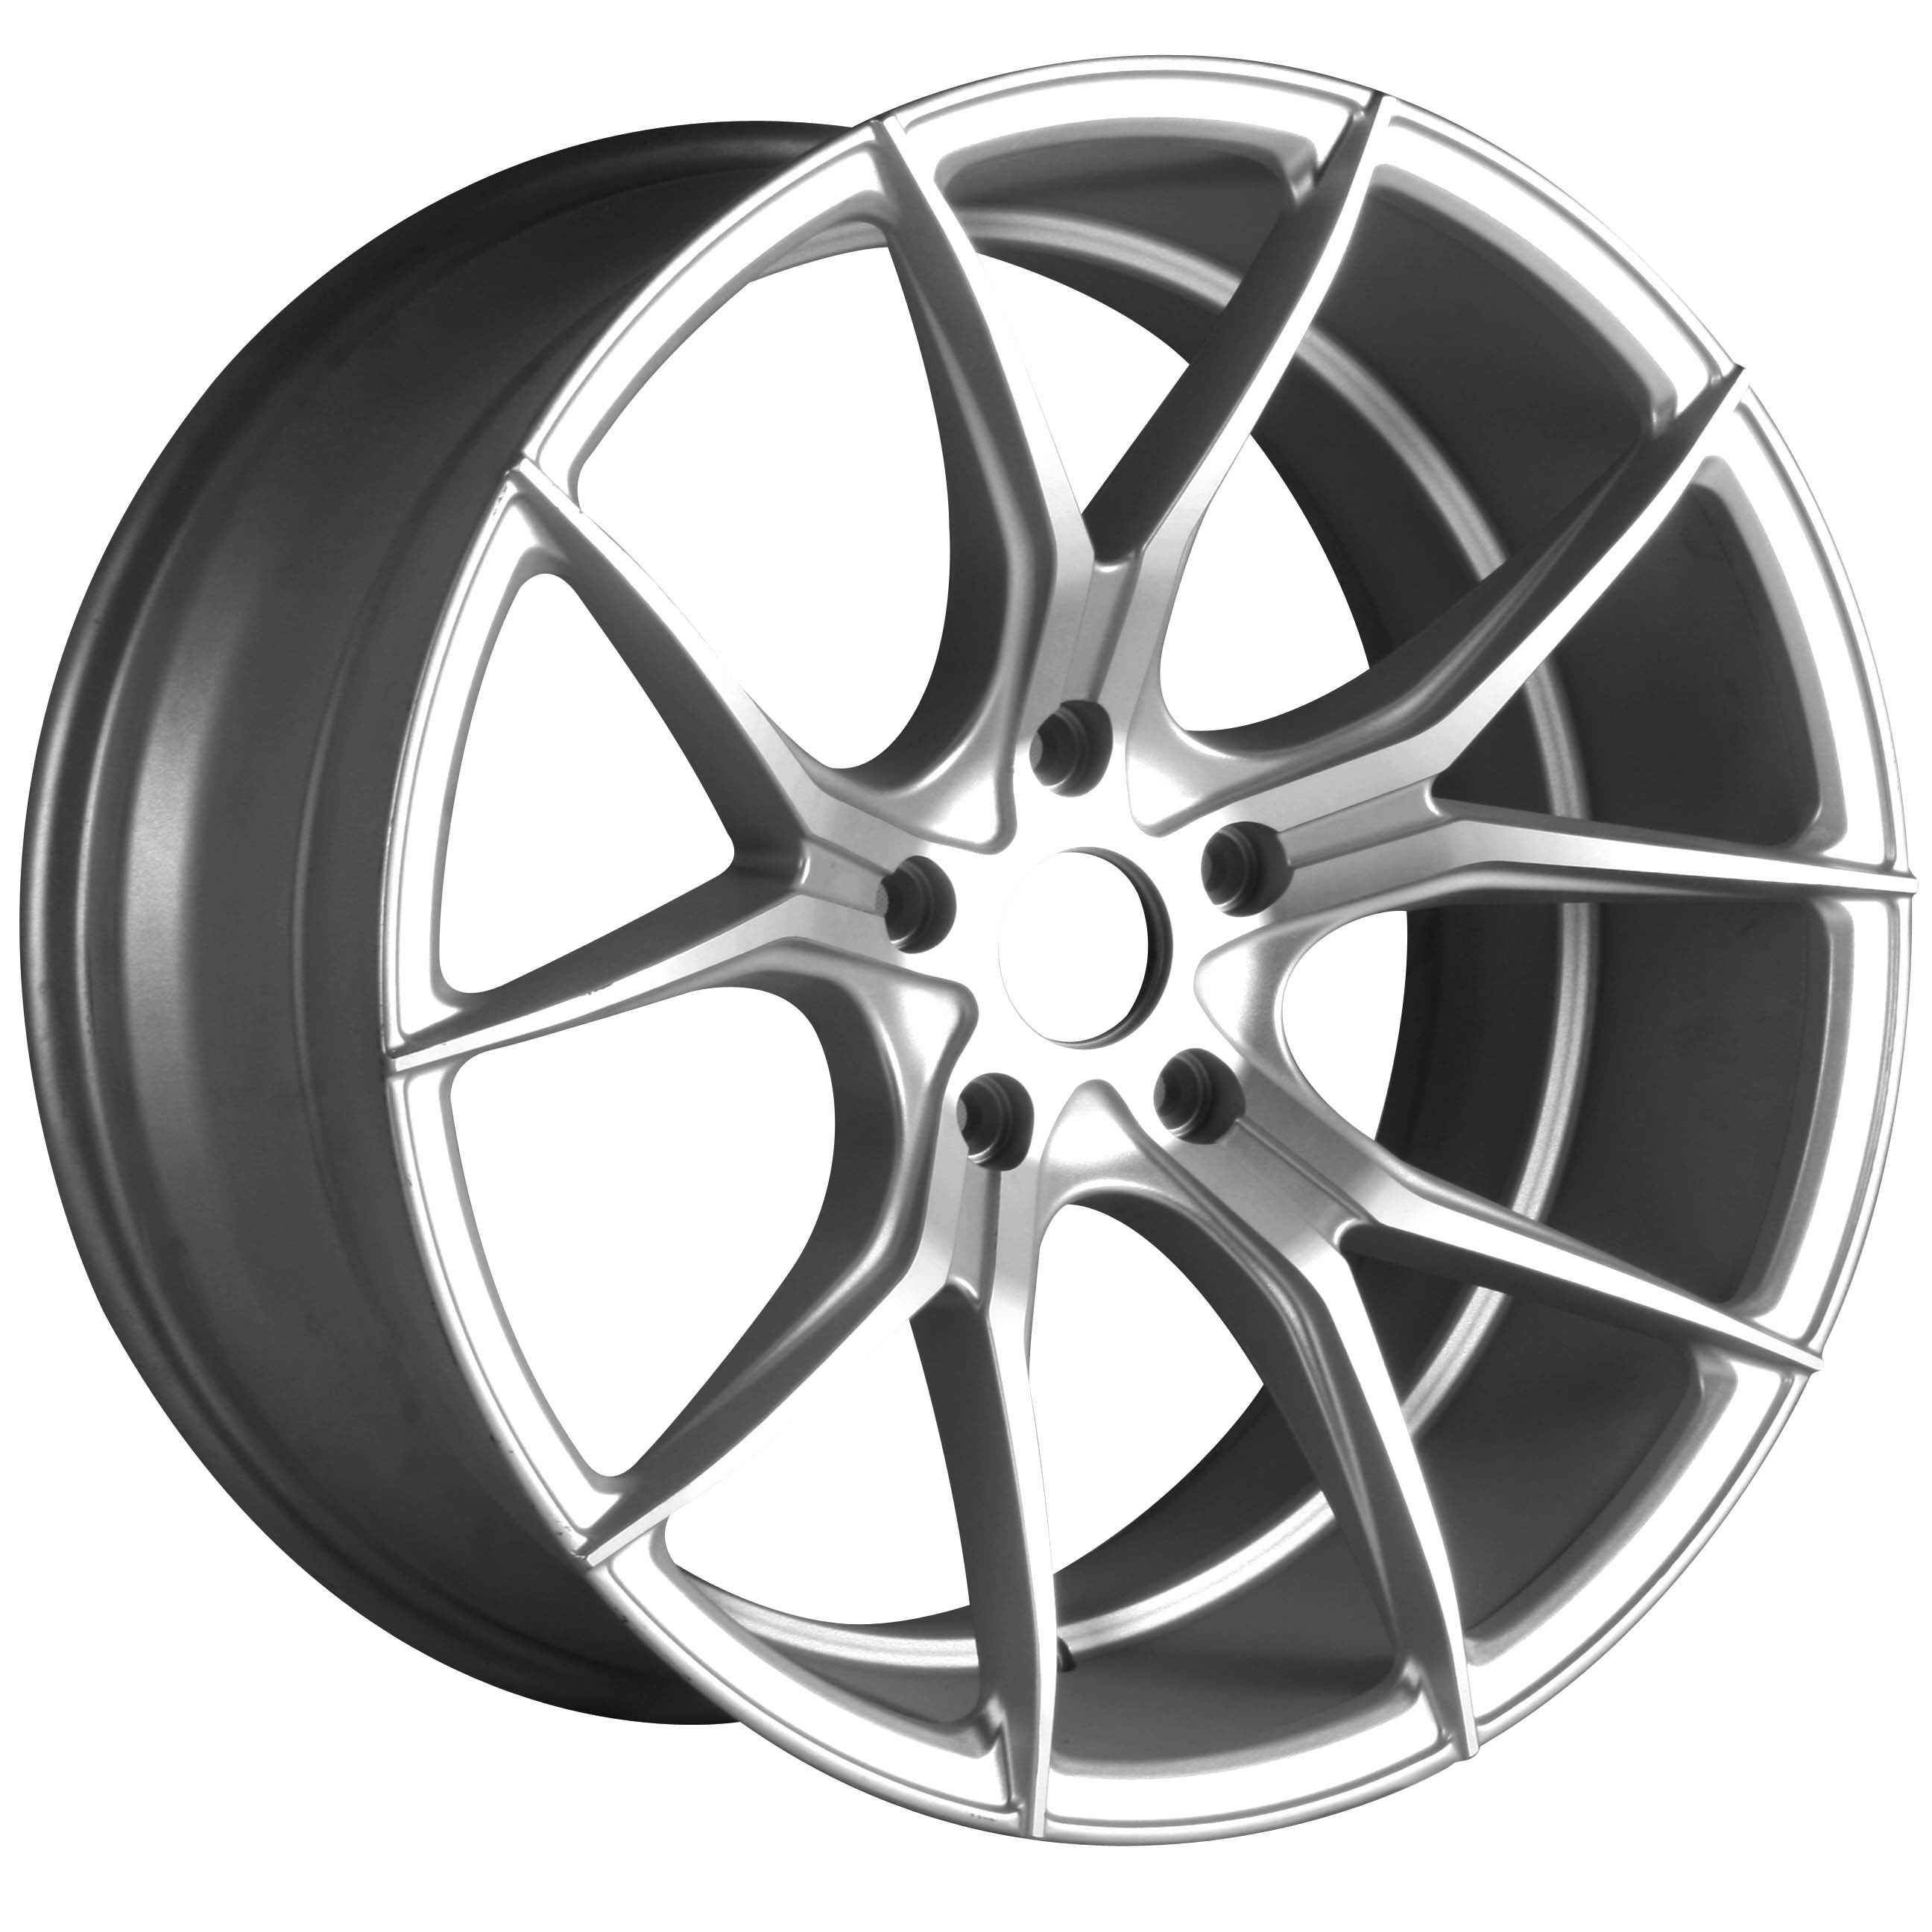 17inch and 18inch Alloy Wheel for Aftermarket